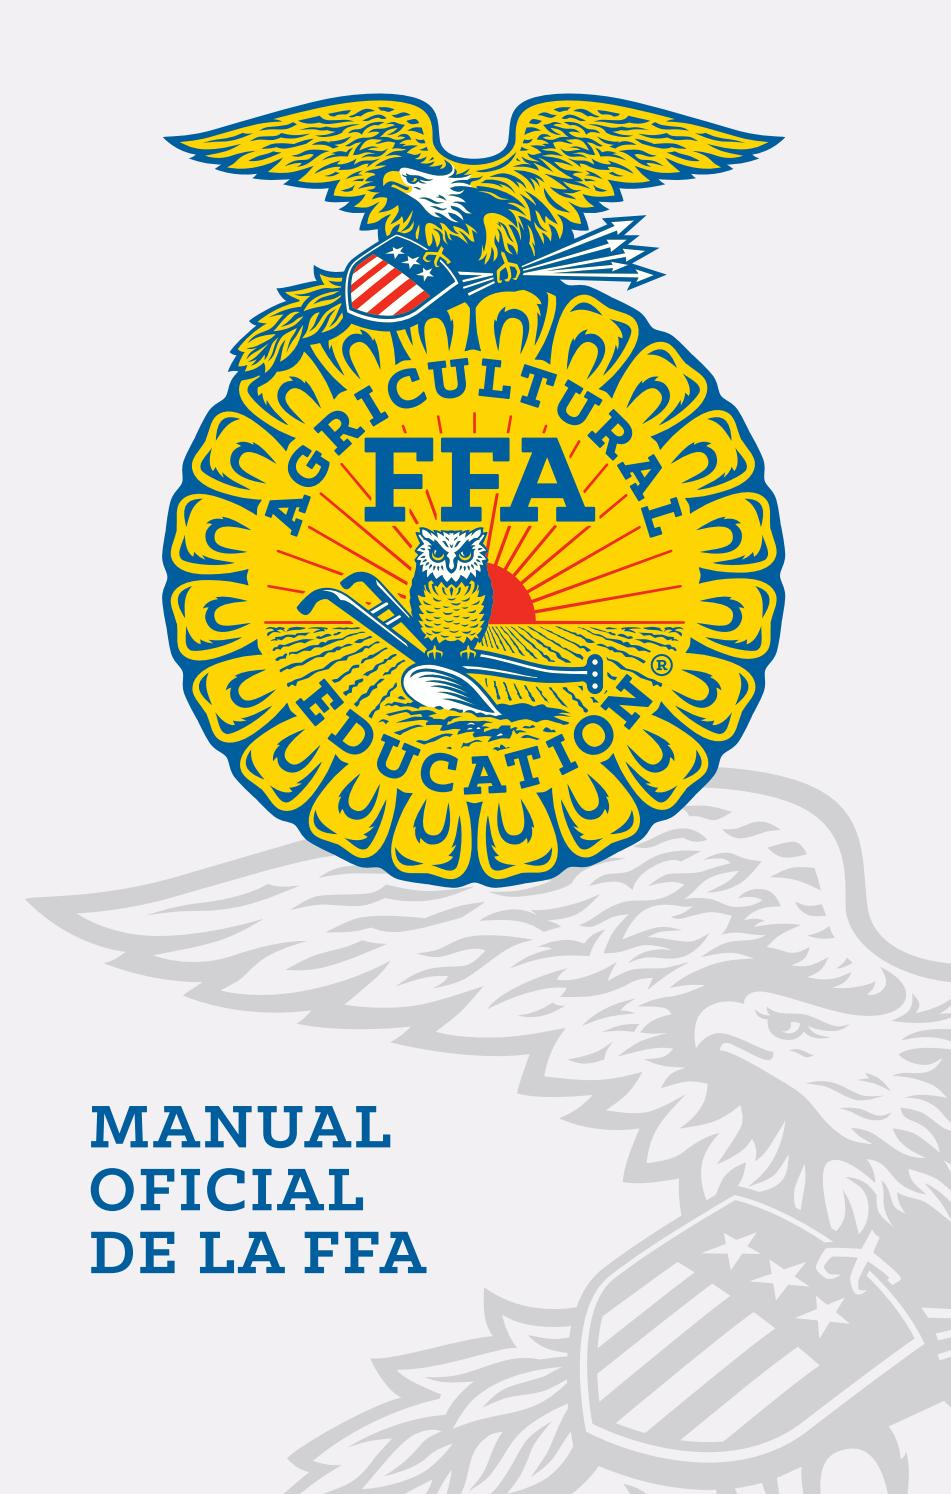 Manual oficial de la ffa 2017 final by National FFA Organization - issuu